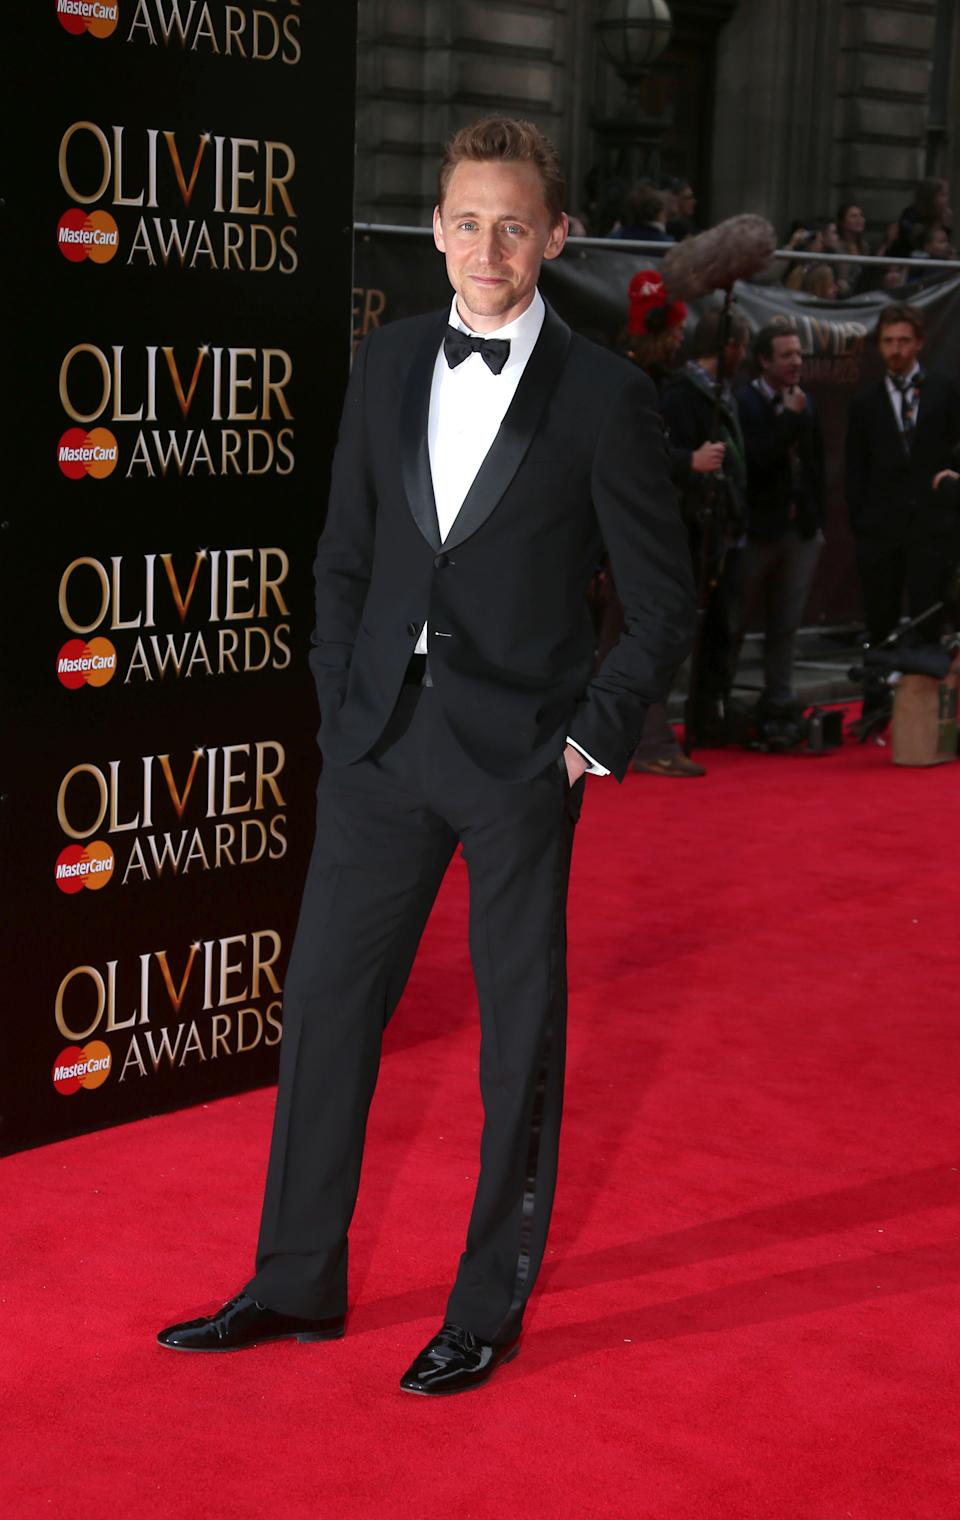 Tom Hiddleston at the Olivier Awards 2013 at the Royal opera House in London on Sunday, April 28th, 2013. (Photo by Joel Ryan/Invision/AP)